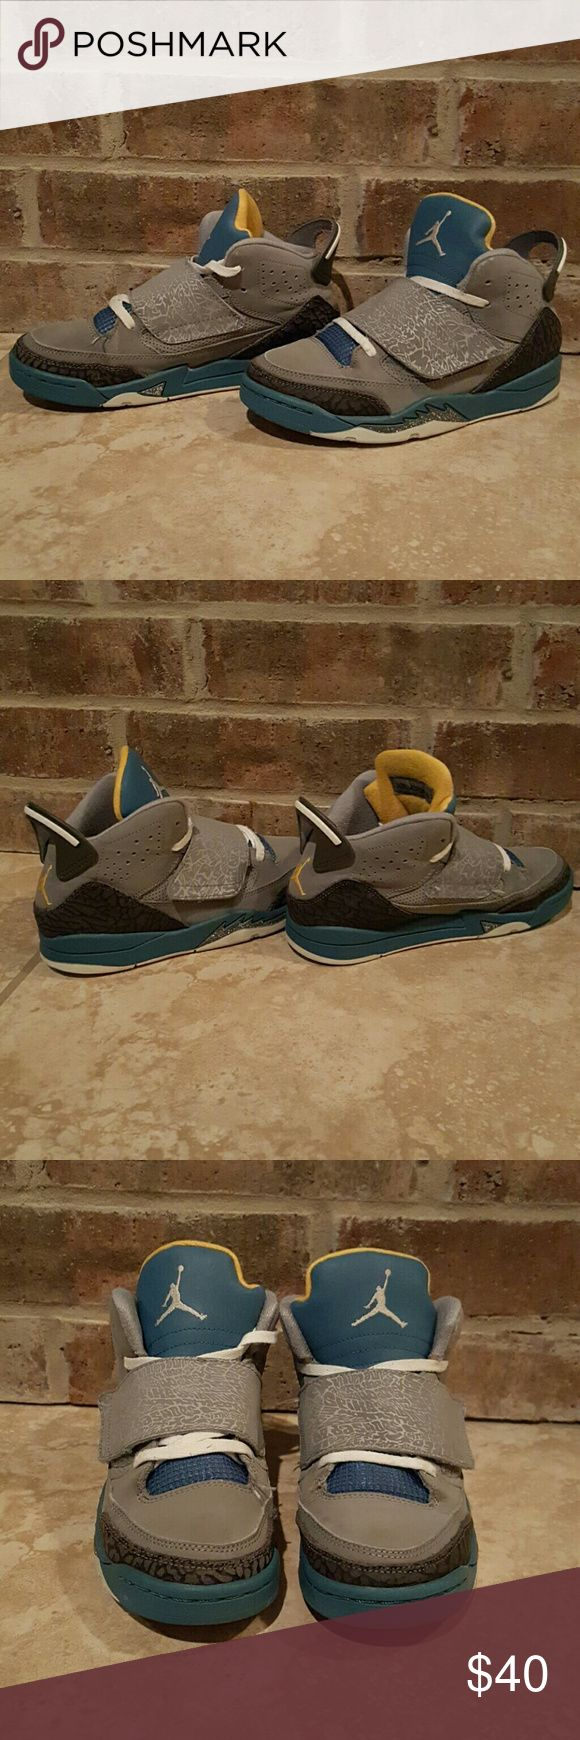 Gently used Michael Jordan boys shoes Great pair of gray, baby blue, & yellow size 2.5 boys shoes Michael Jordan  Shoes Sneakers